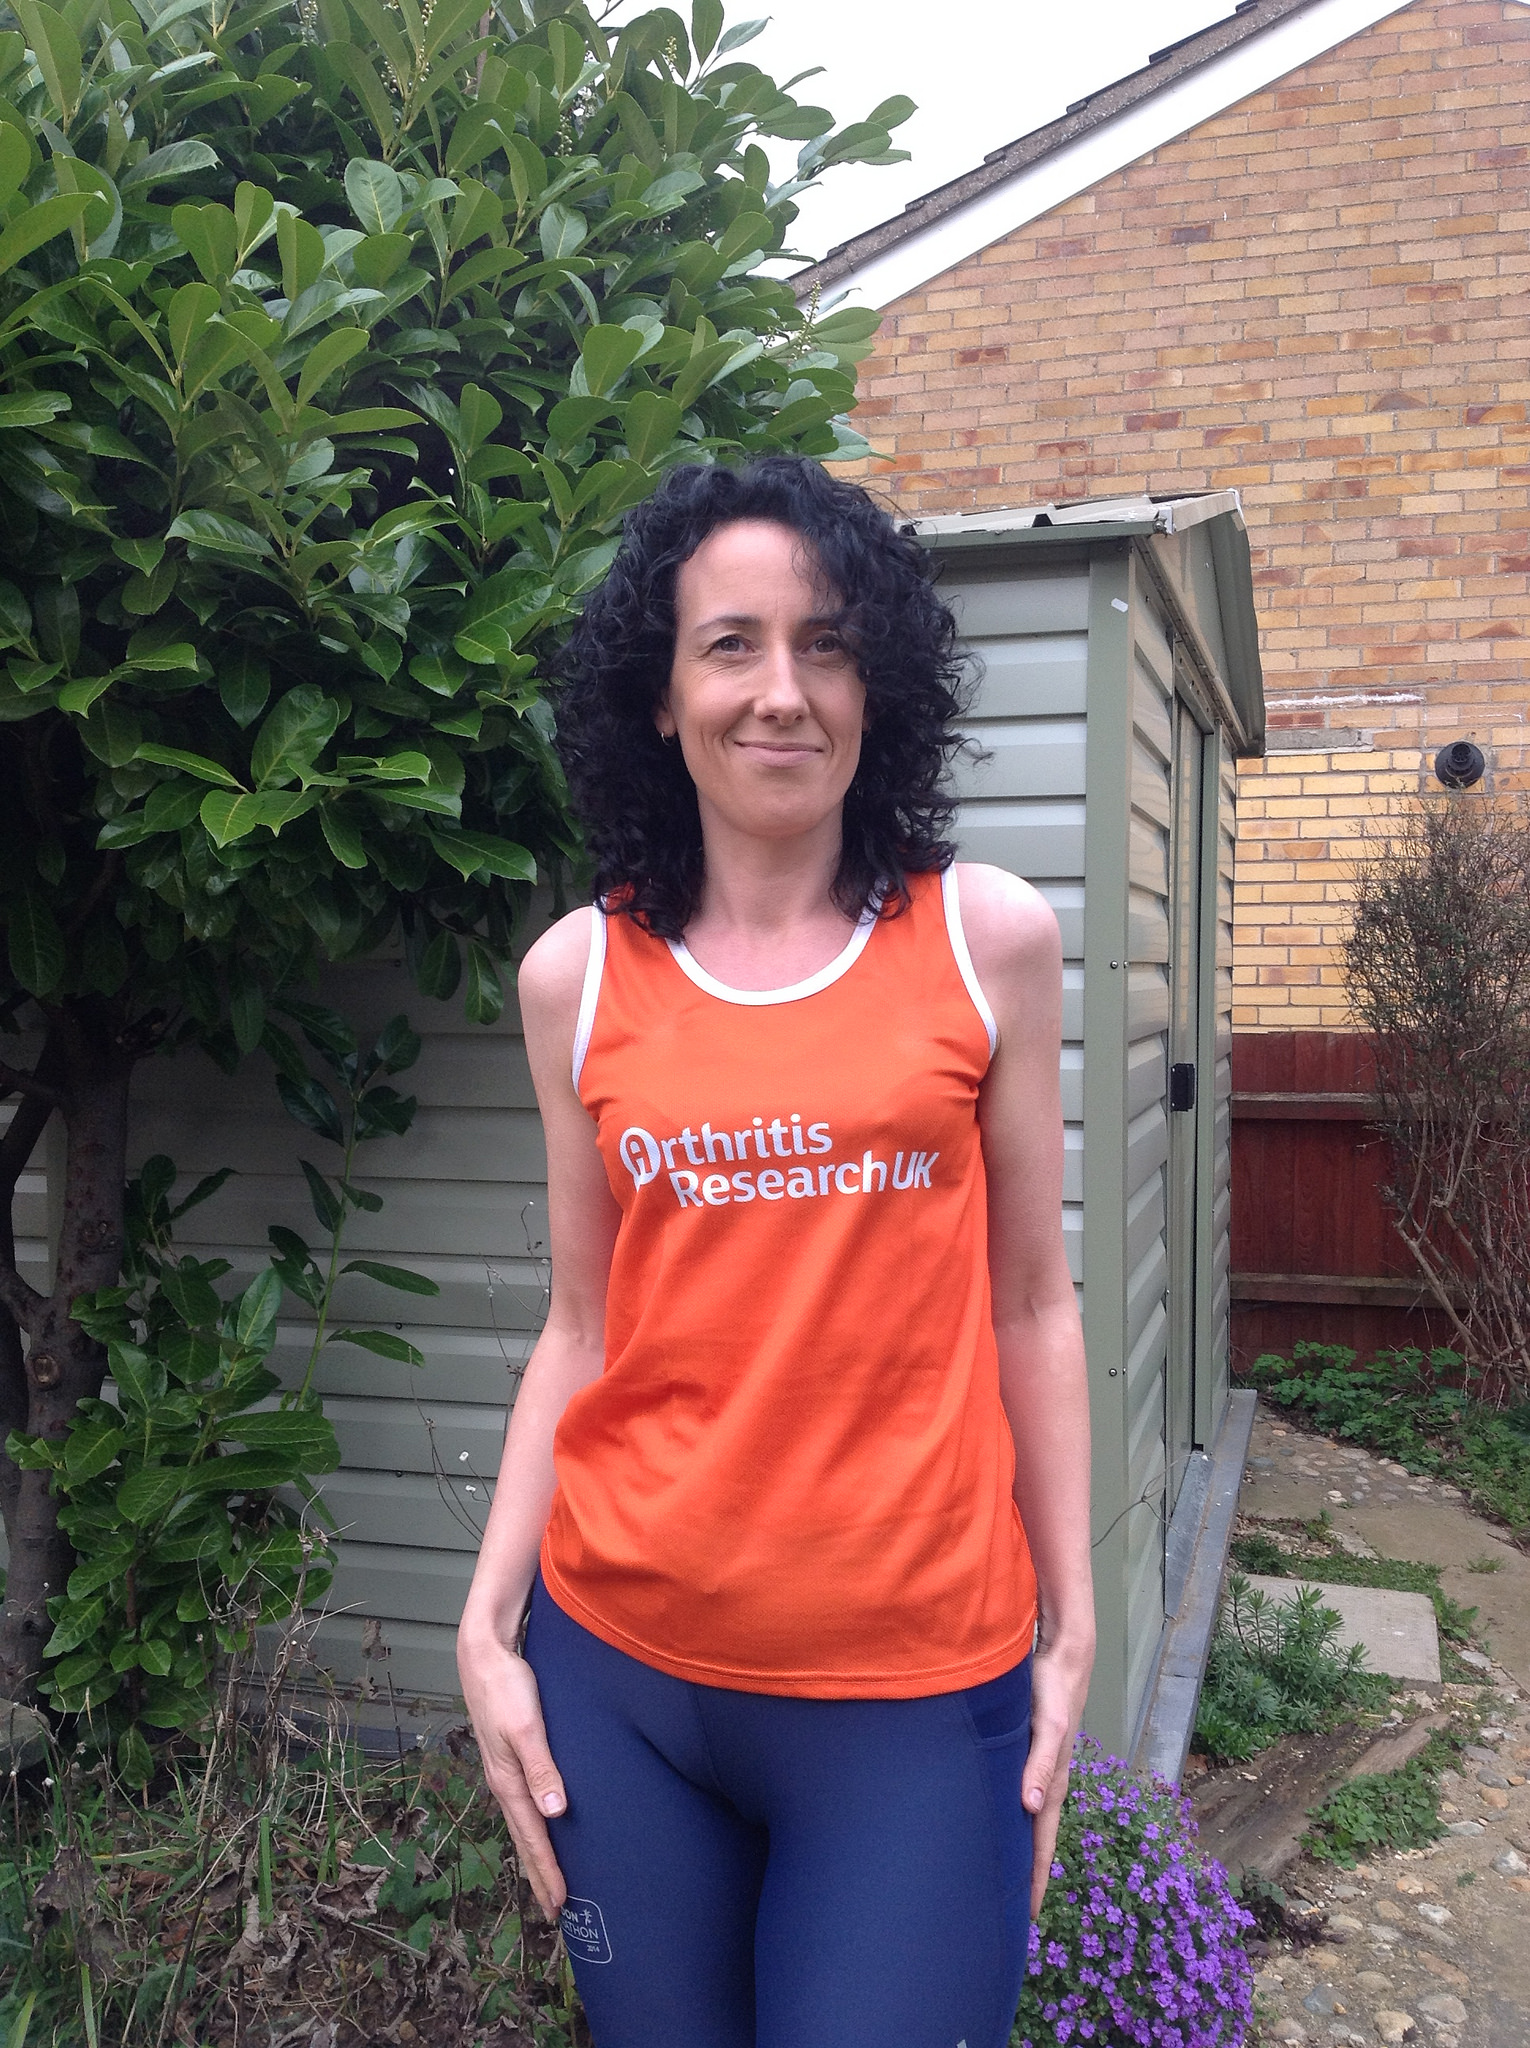 Monica Whyte completed the 26.2 mile endurance run in four hours and 37 minutes yesterday in honour of her father who died at the age of 57.